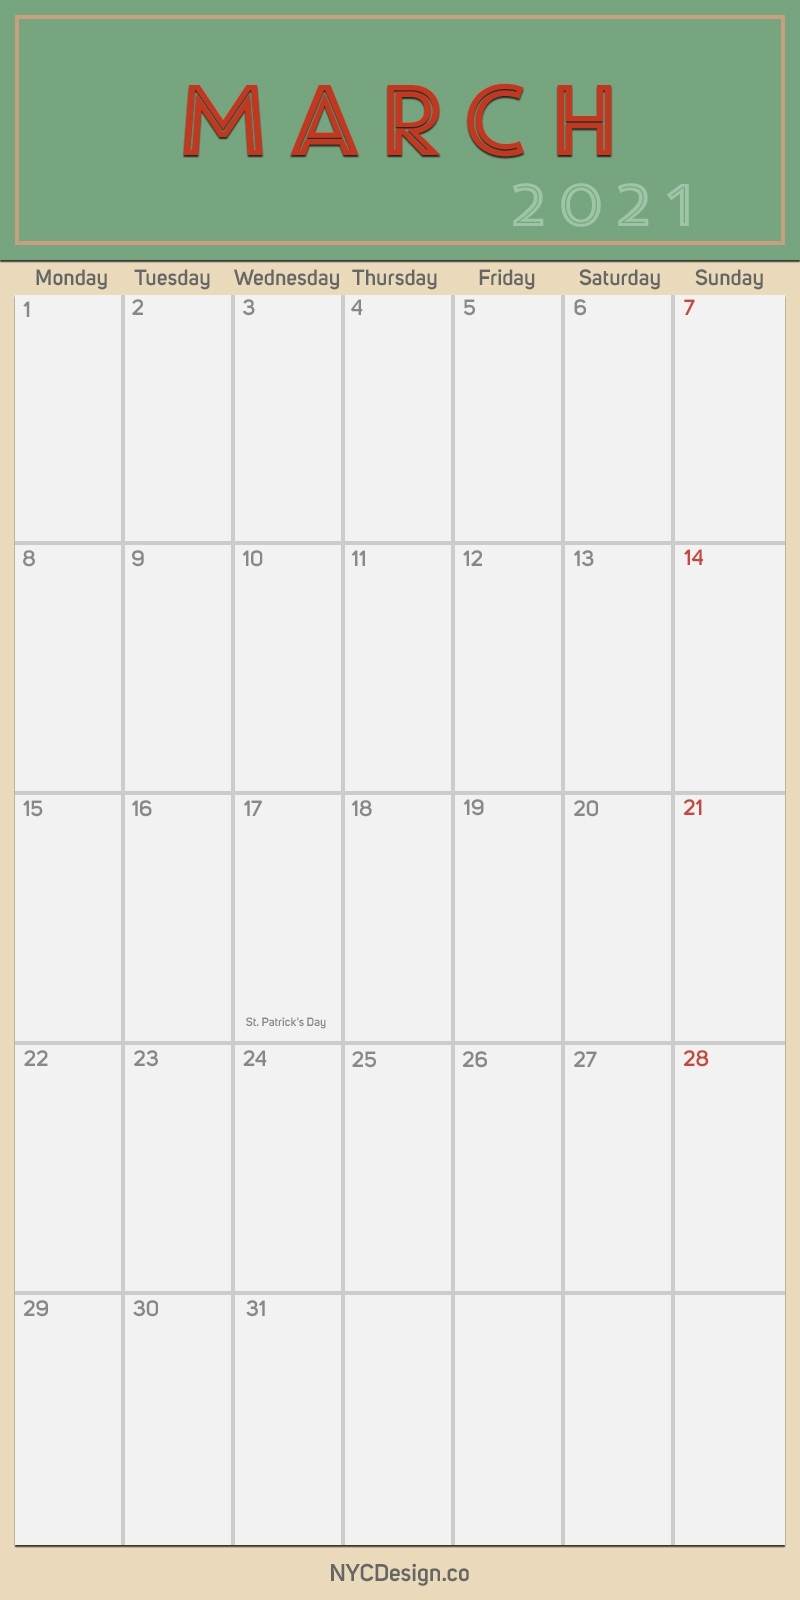 2021 March - Monthly Calendar With Holidays, Printable Free, Pdf - Monday Start - Nycdesign.co February March April May June 2021 Calendar